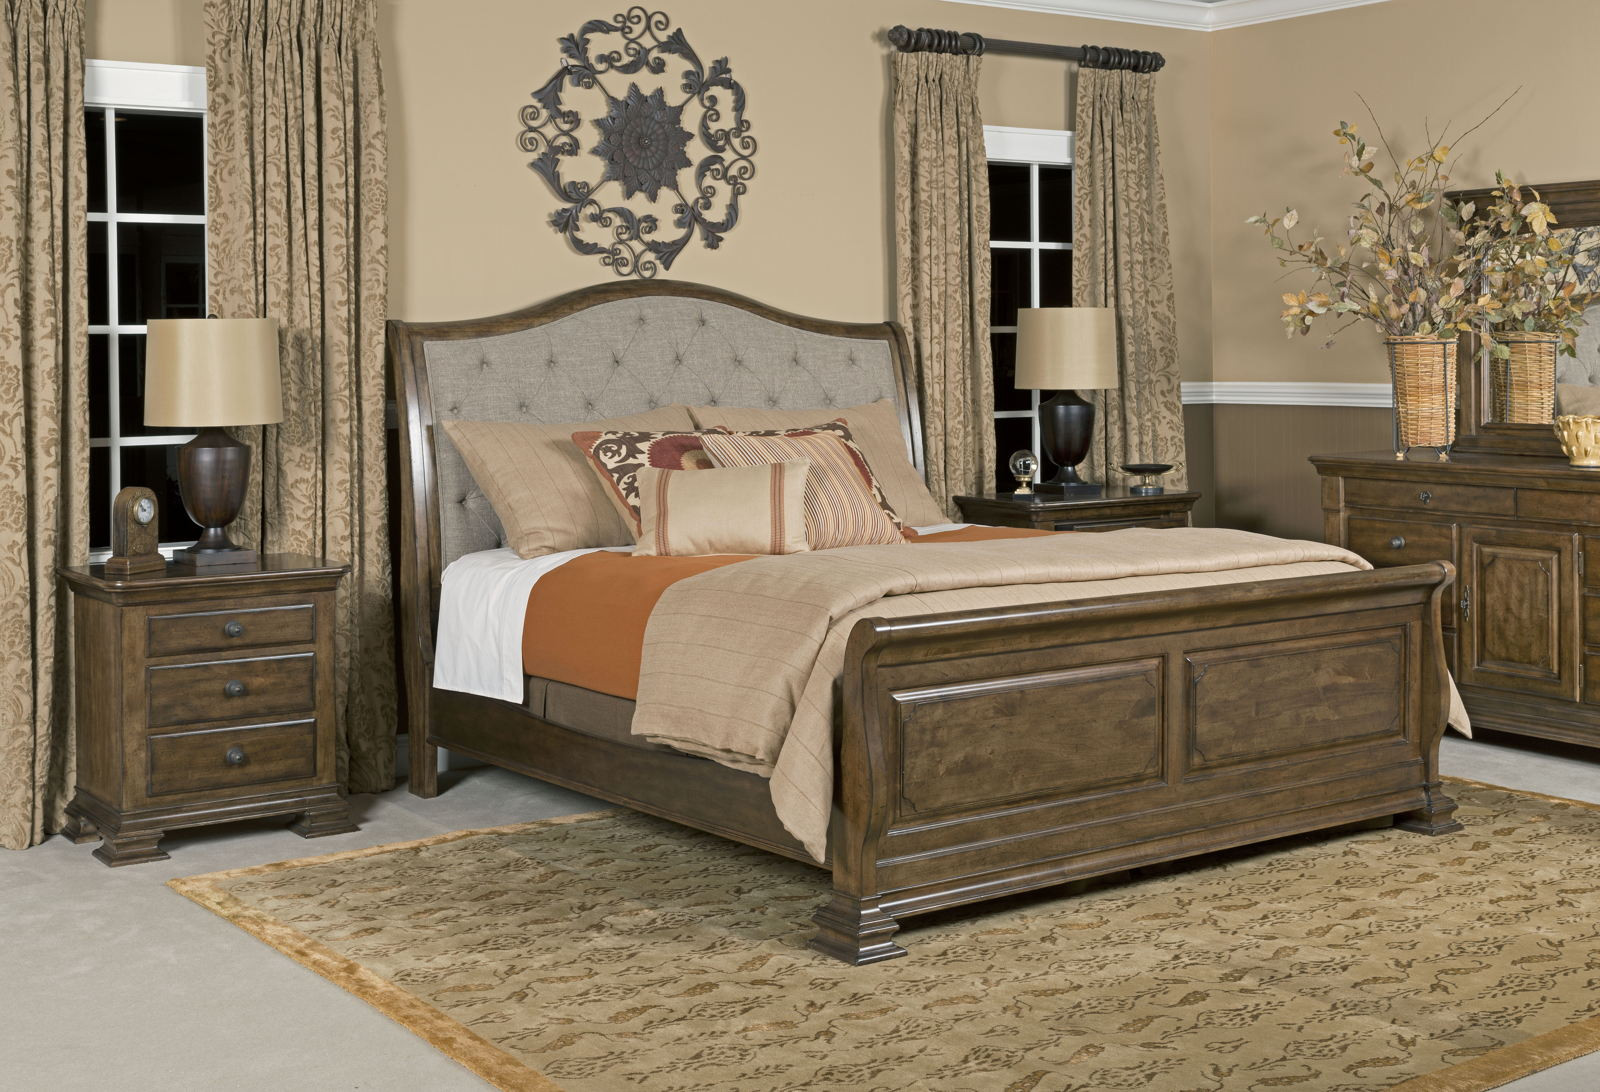 Best ideas about Bedroom Furniture Discounts . Save or Pin Kincaid Portolone Sleigh Bedroom Set in Rich Truffle CODE Now.